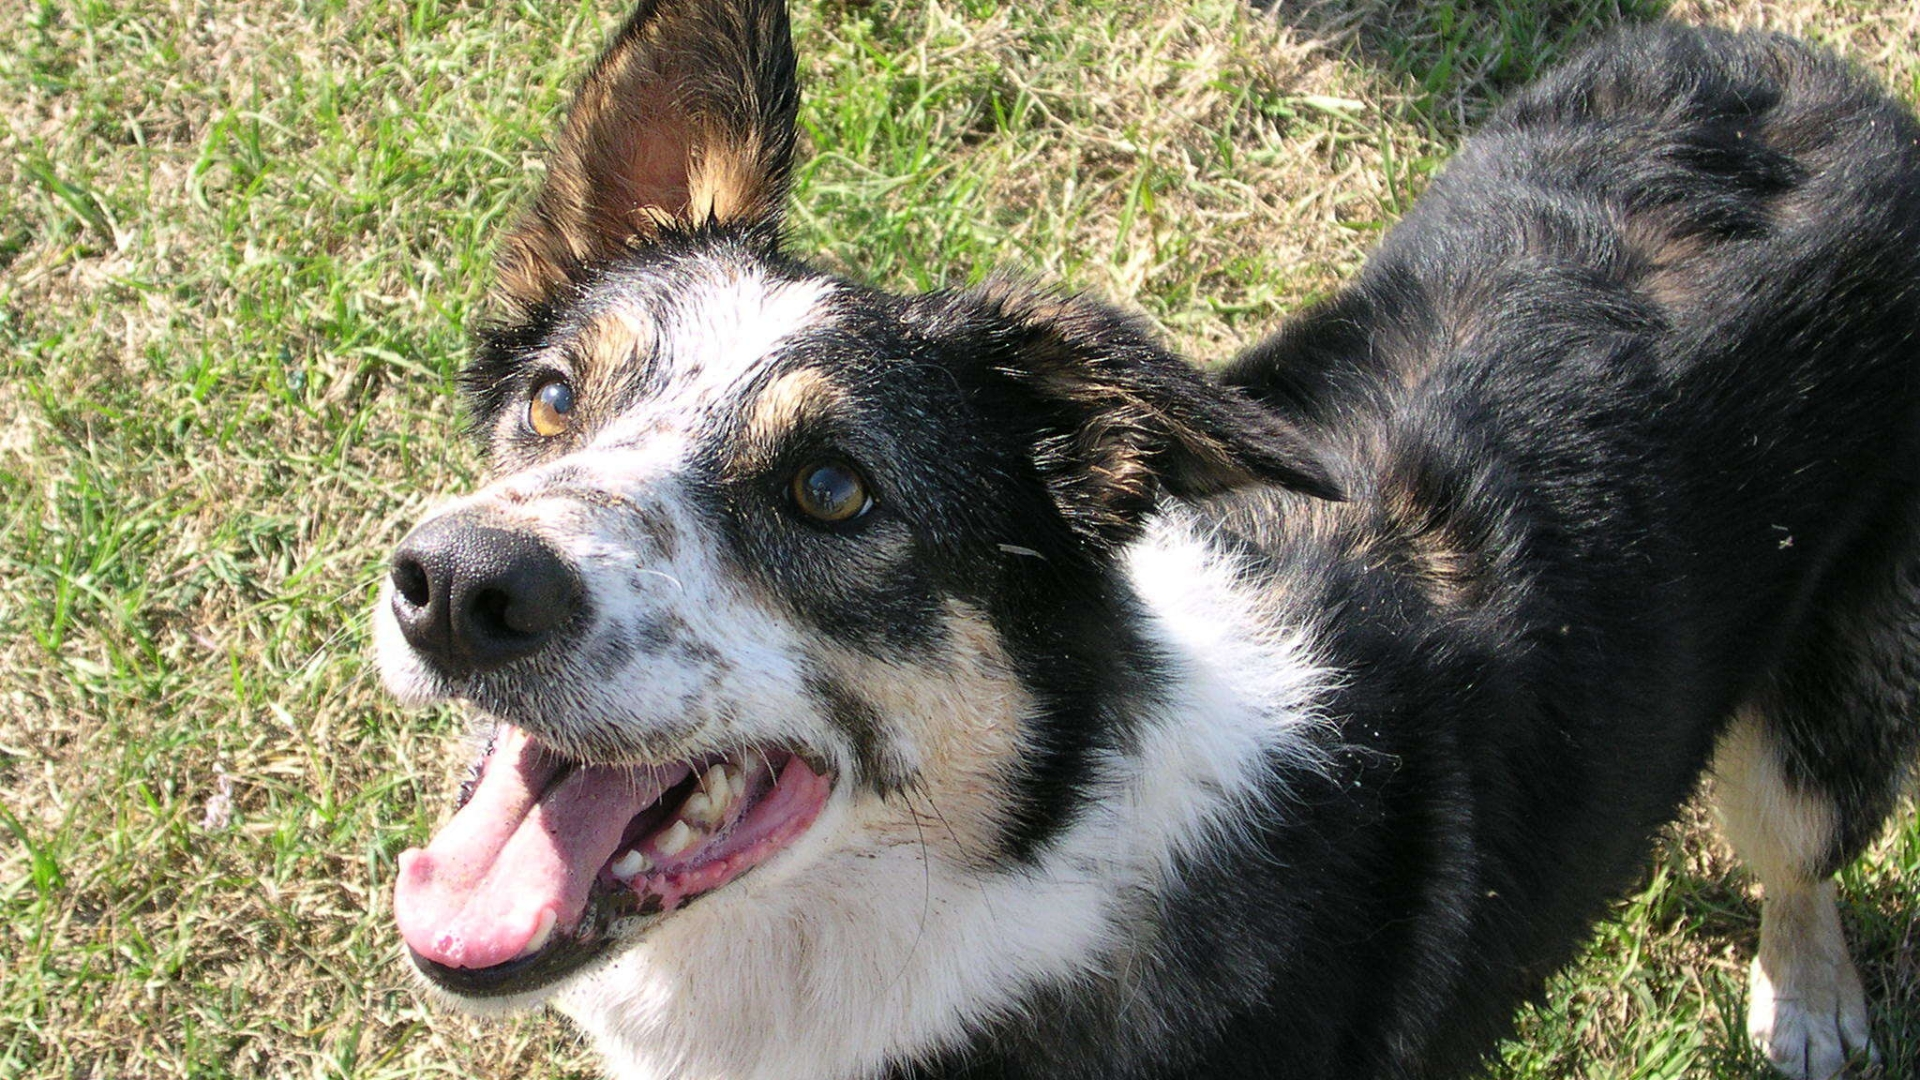 Dog lovers emerge to support owners who border collie was